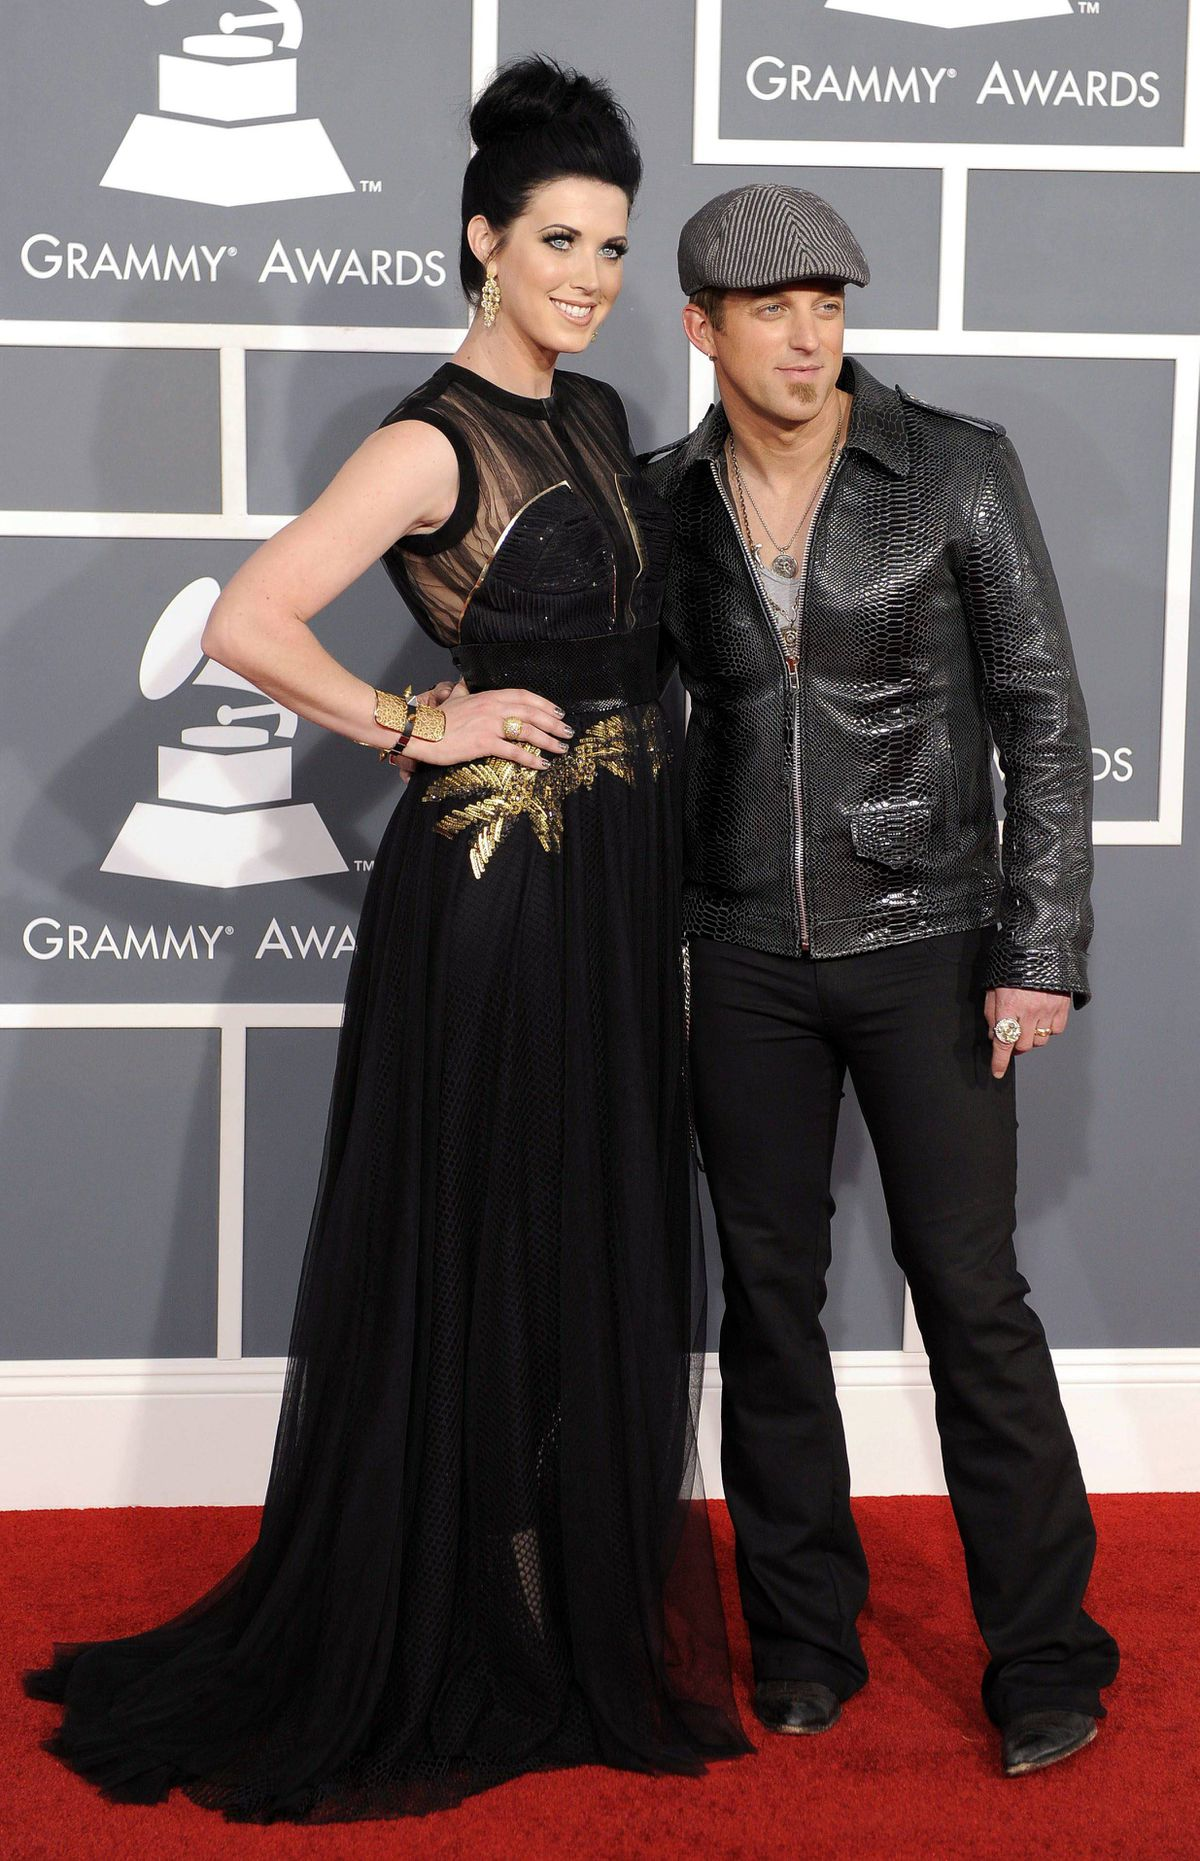 Shawna Thompson, left, and Keifer Thompson of Thompson Square arrive at the 54th annual GRAMMY Awards on Sunday, Feb. 12, 2012 in Los Angeles.